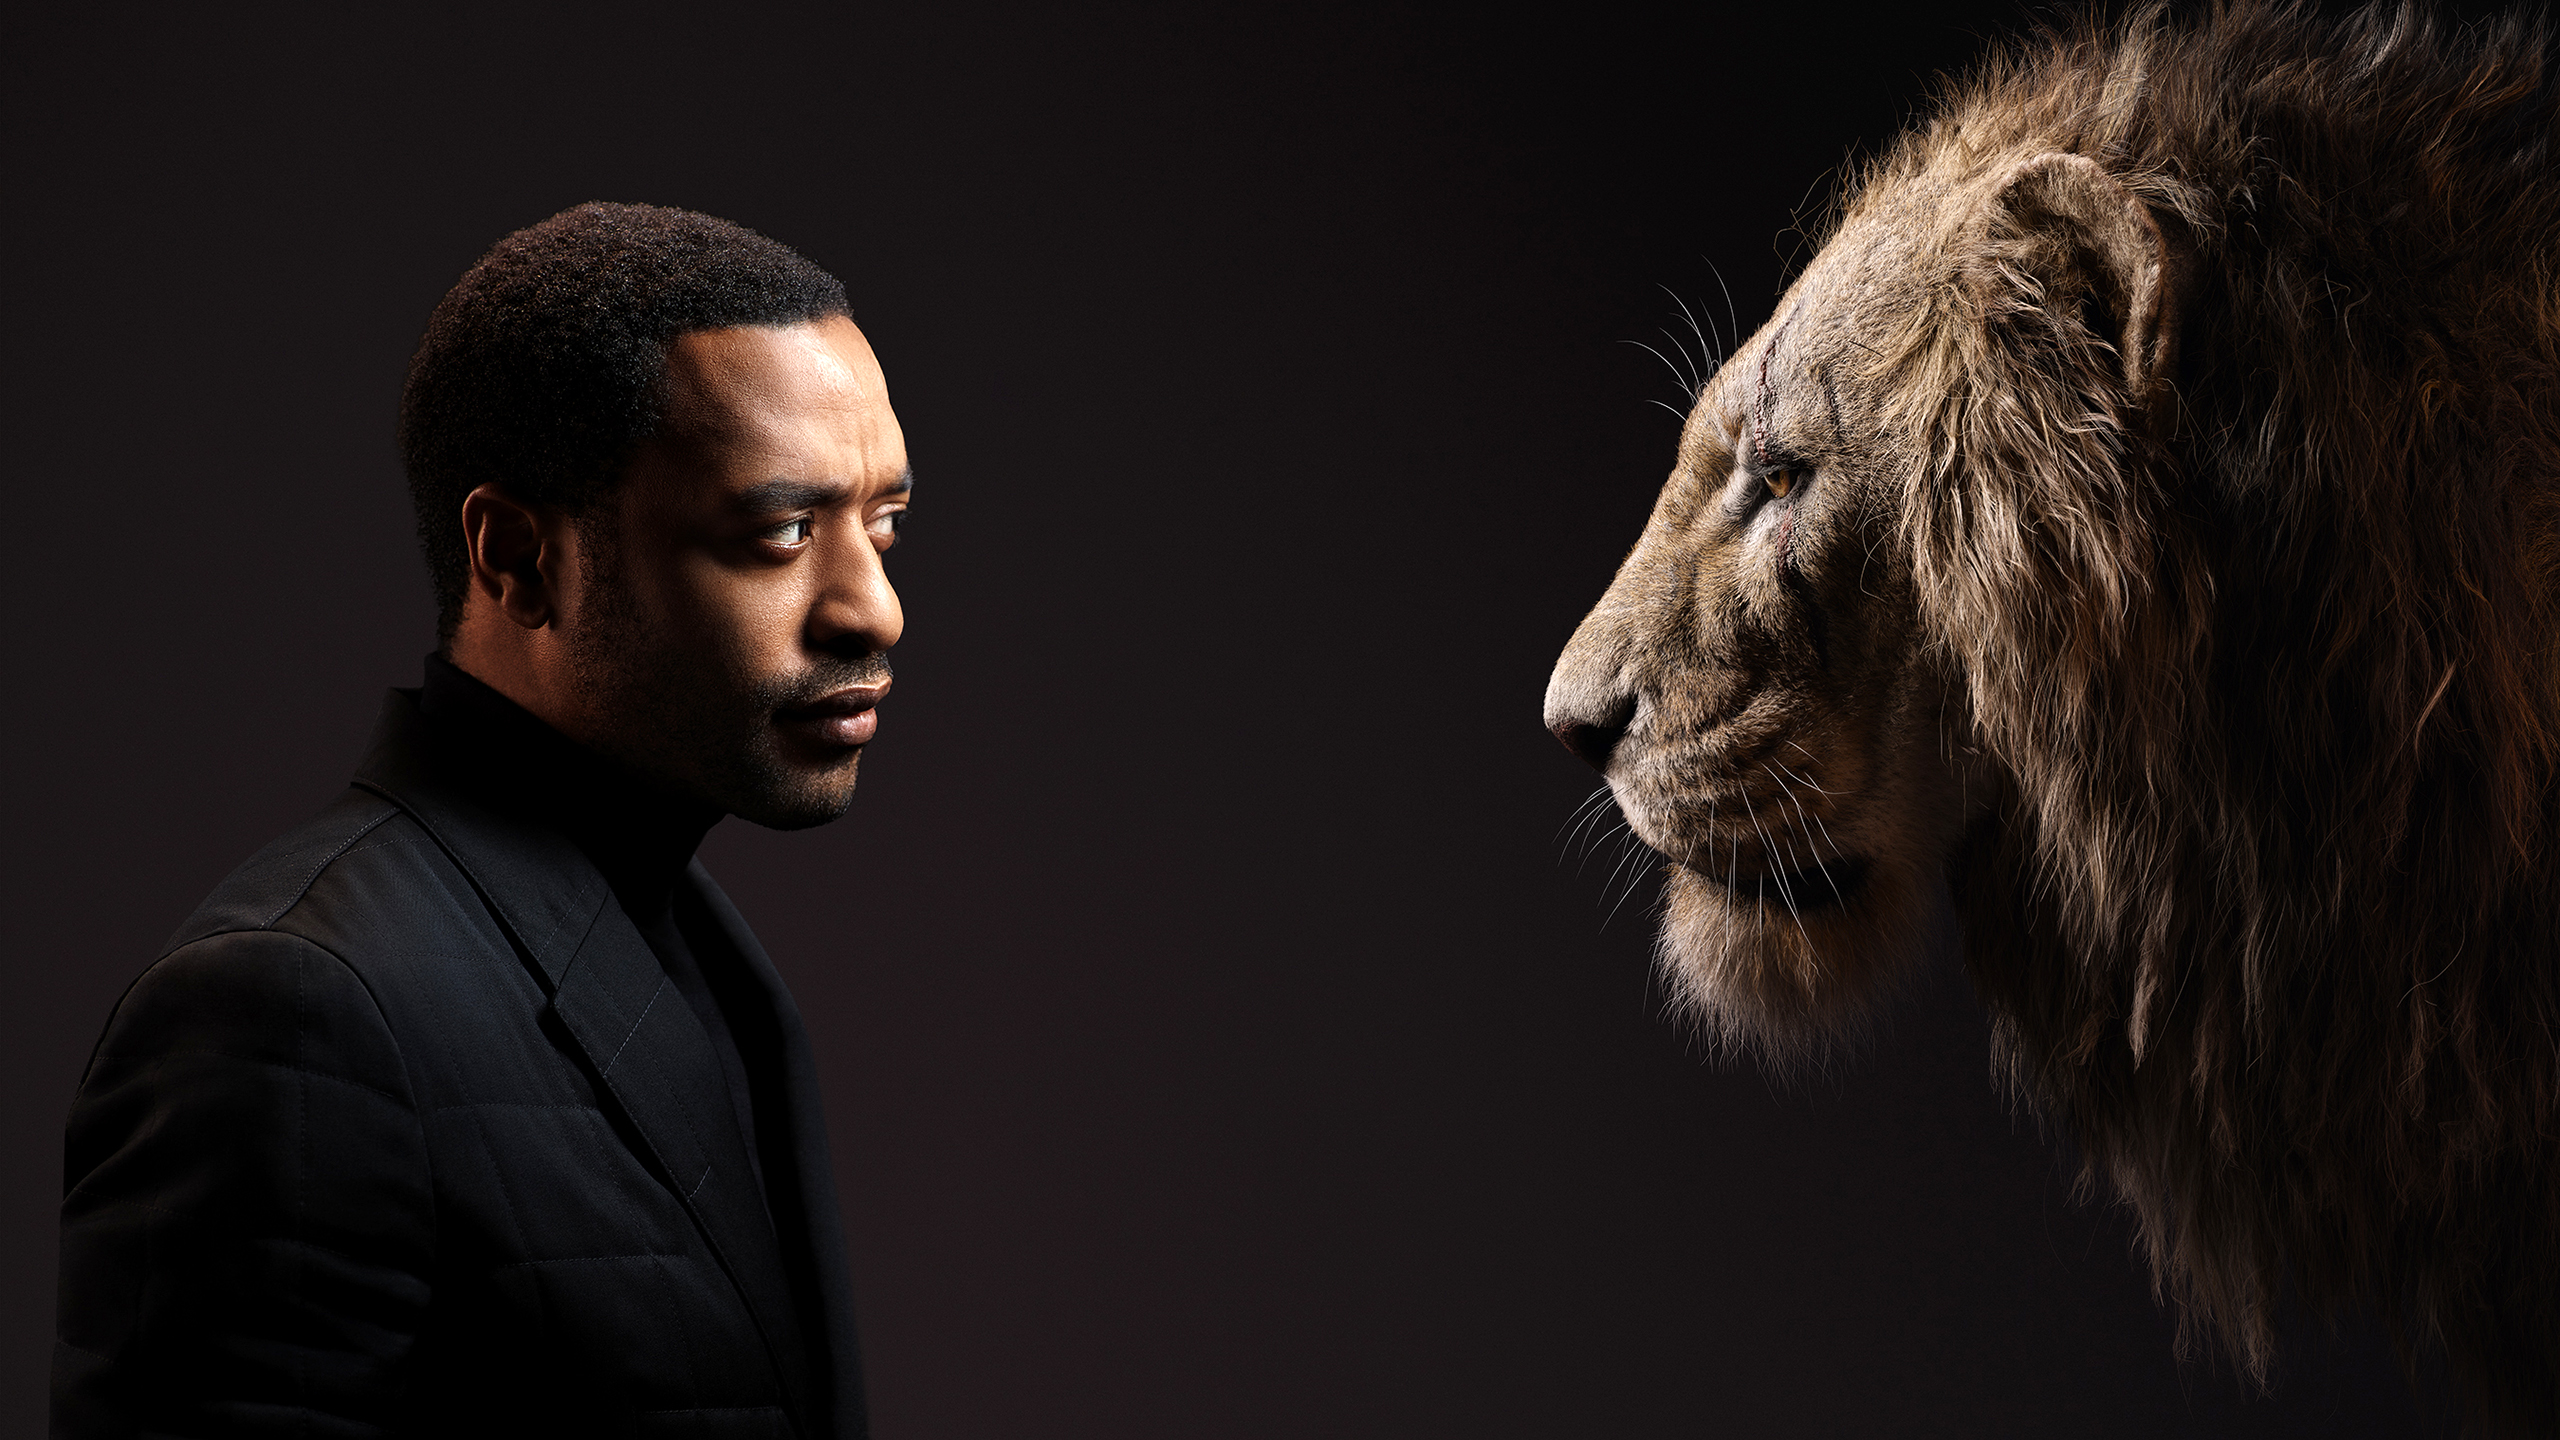 Chiwetel Ejiofor As Scar In The Lion King Wallpapers Hd Wallpapers